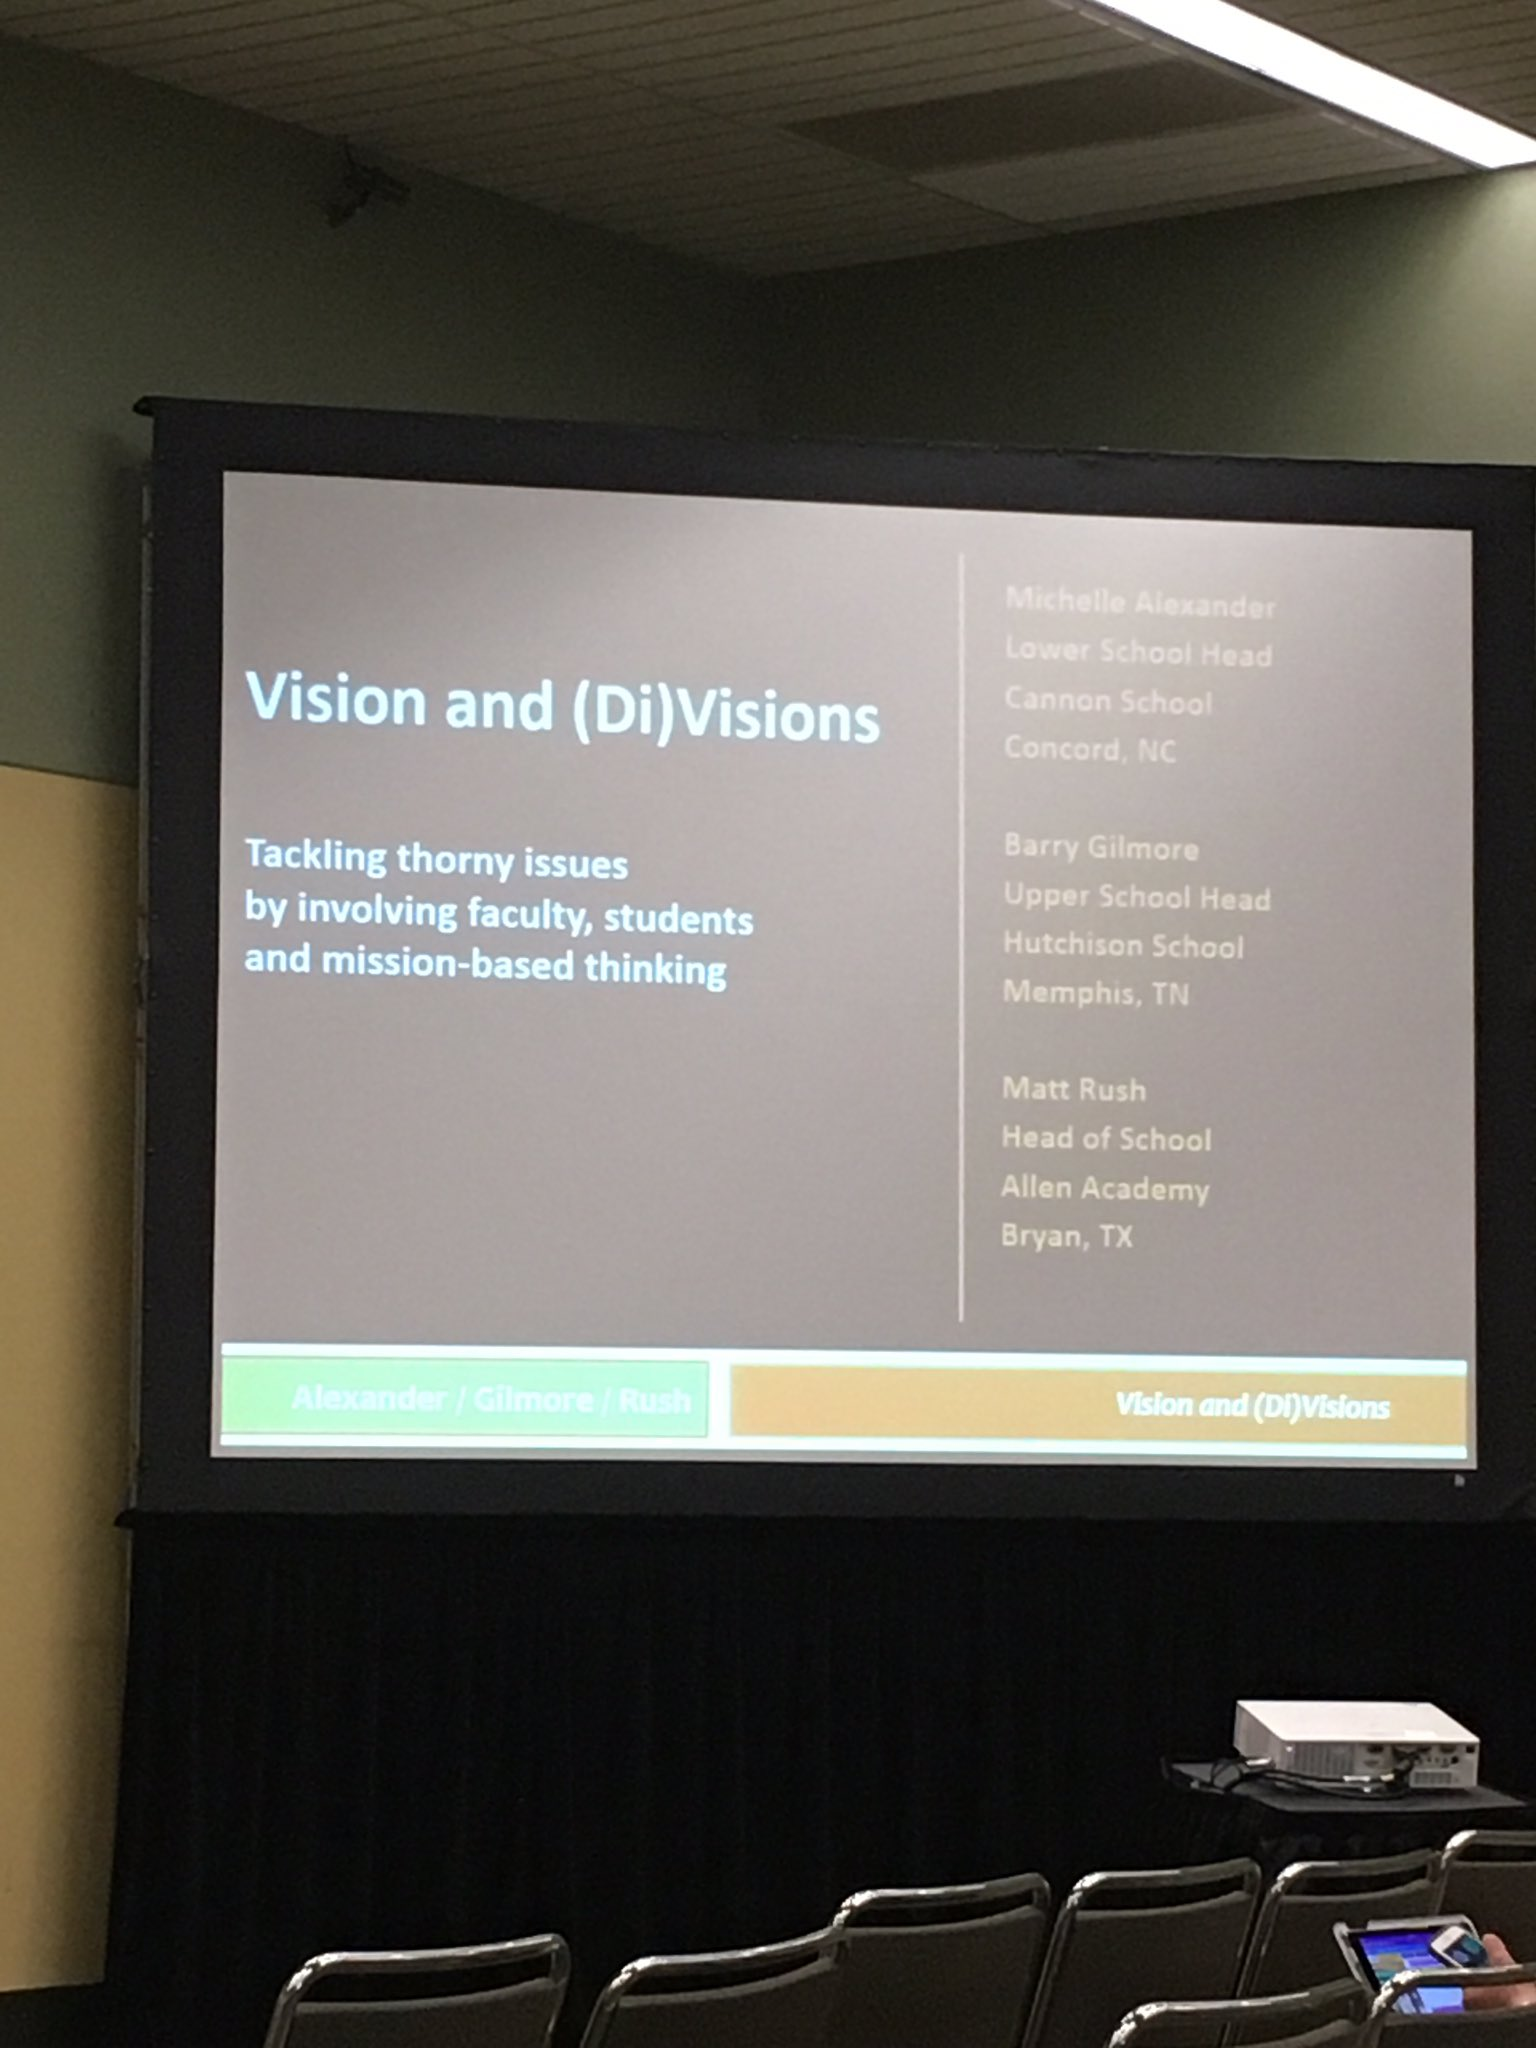 First session! Here we go! #naisac https://t.co/vaIxdZGKCy